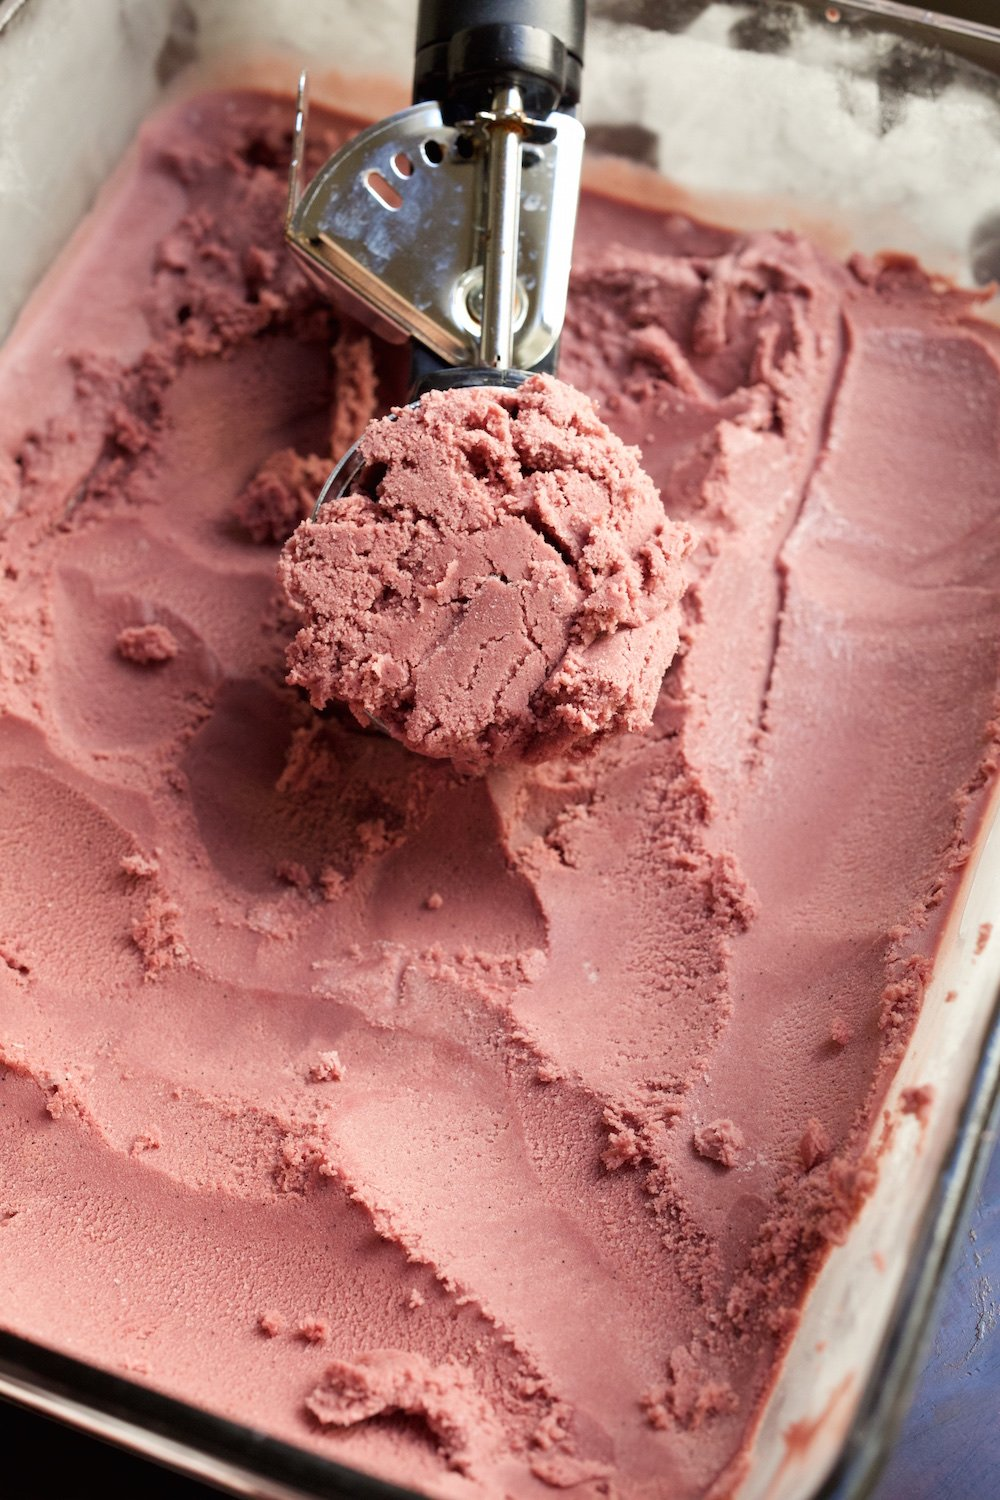 Red wine ice cream being scooped